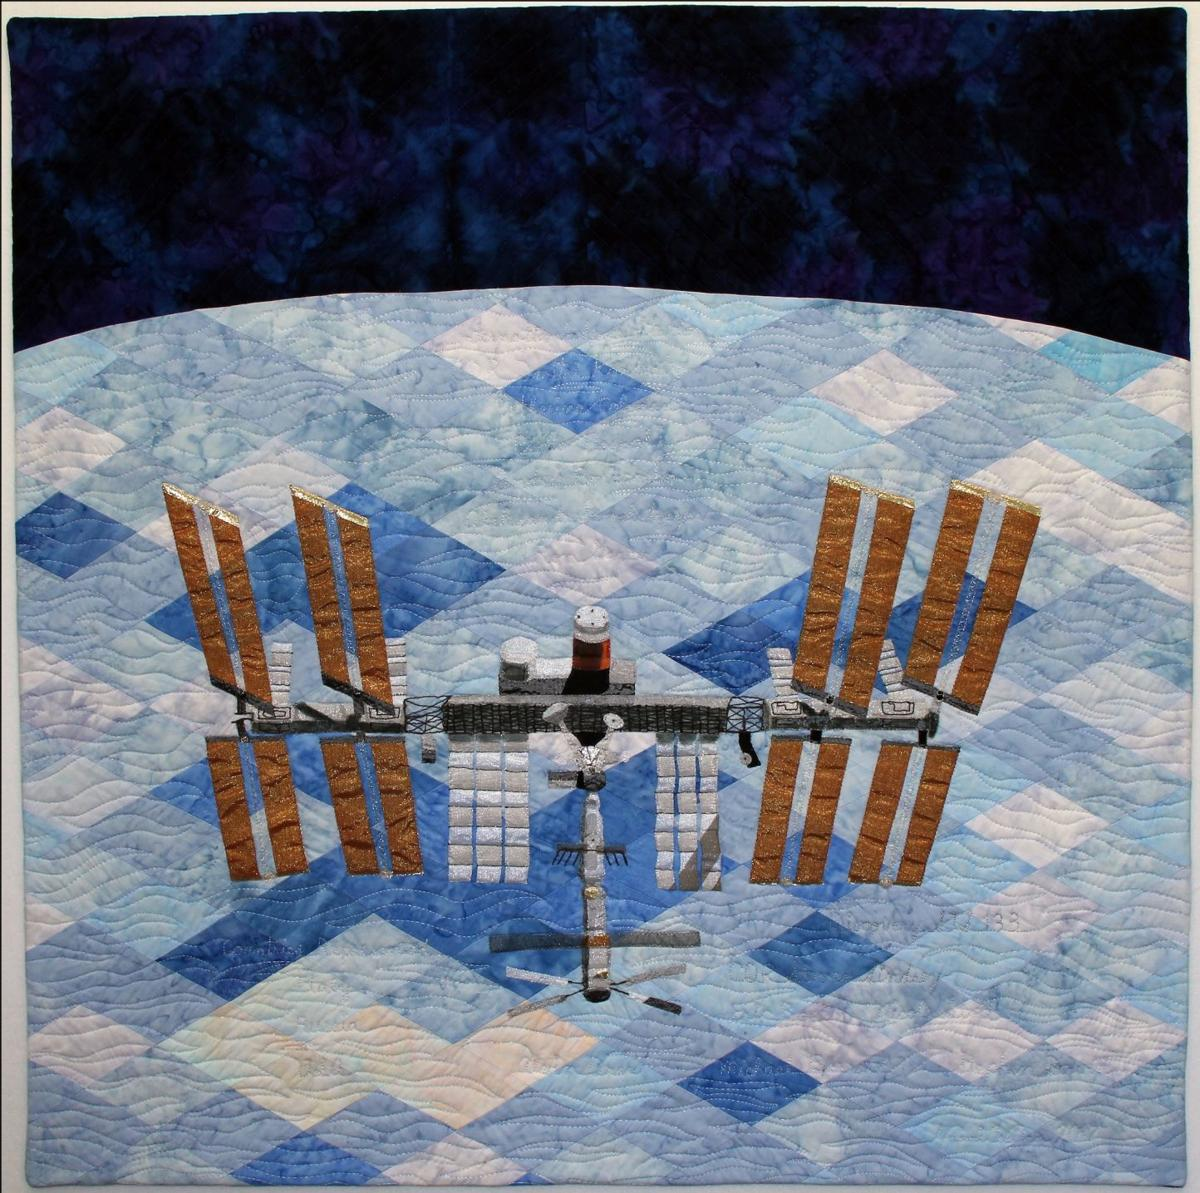 Weidner Space Station